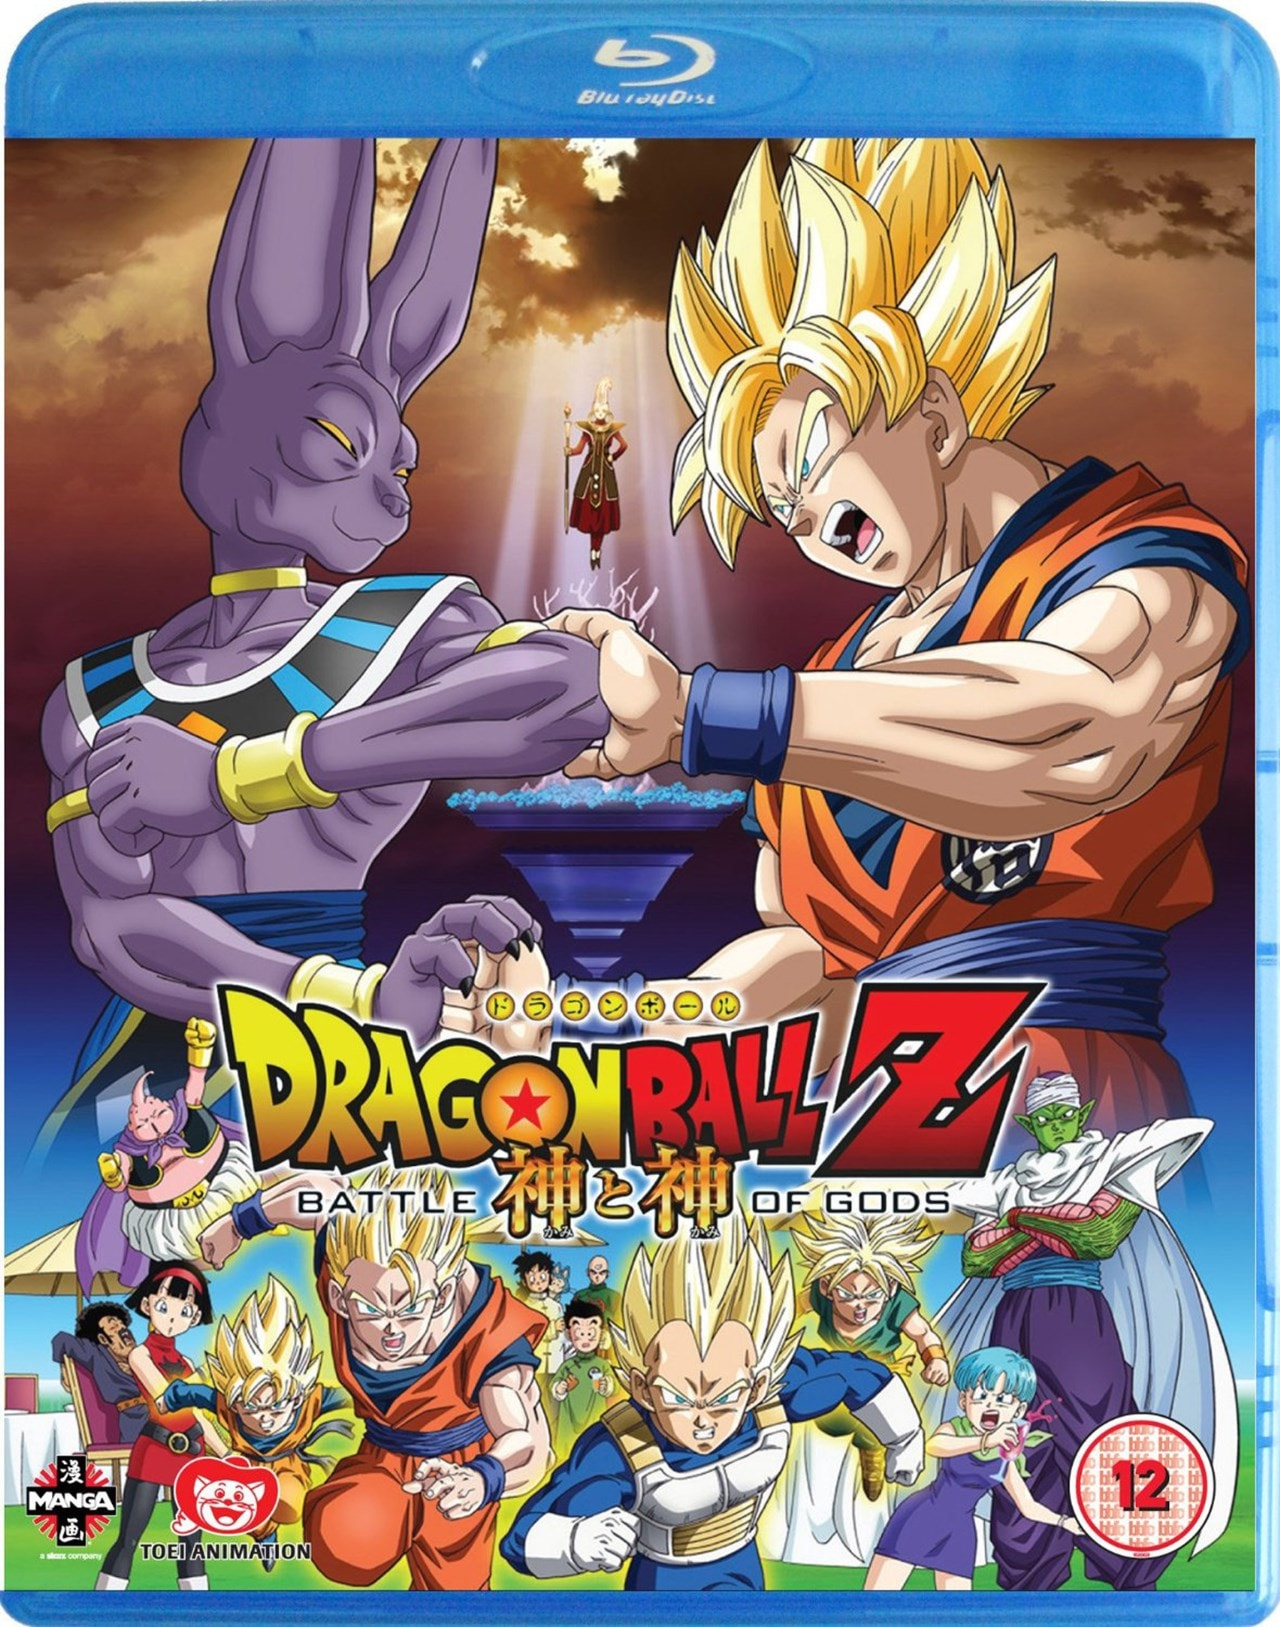 Dragon Ball Z: Battle of Gods - 1